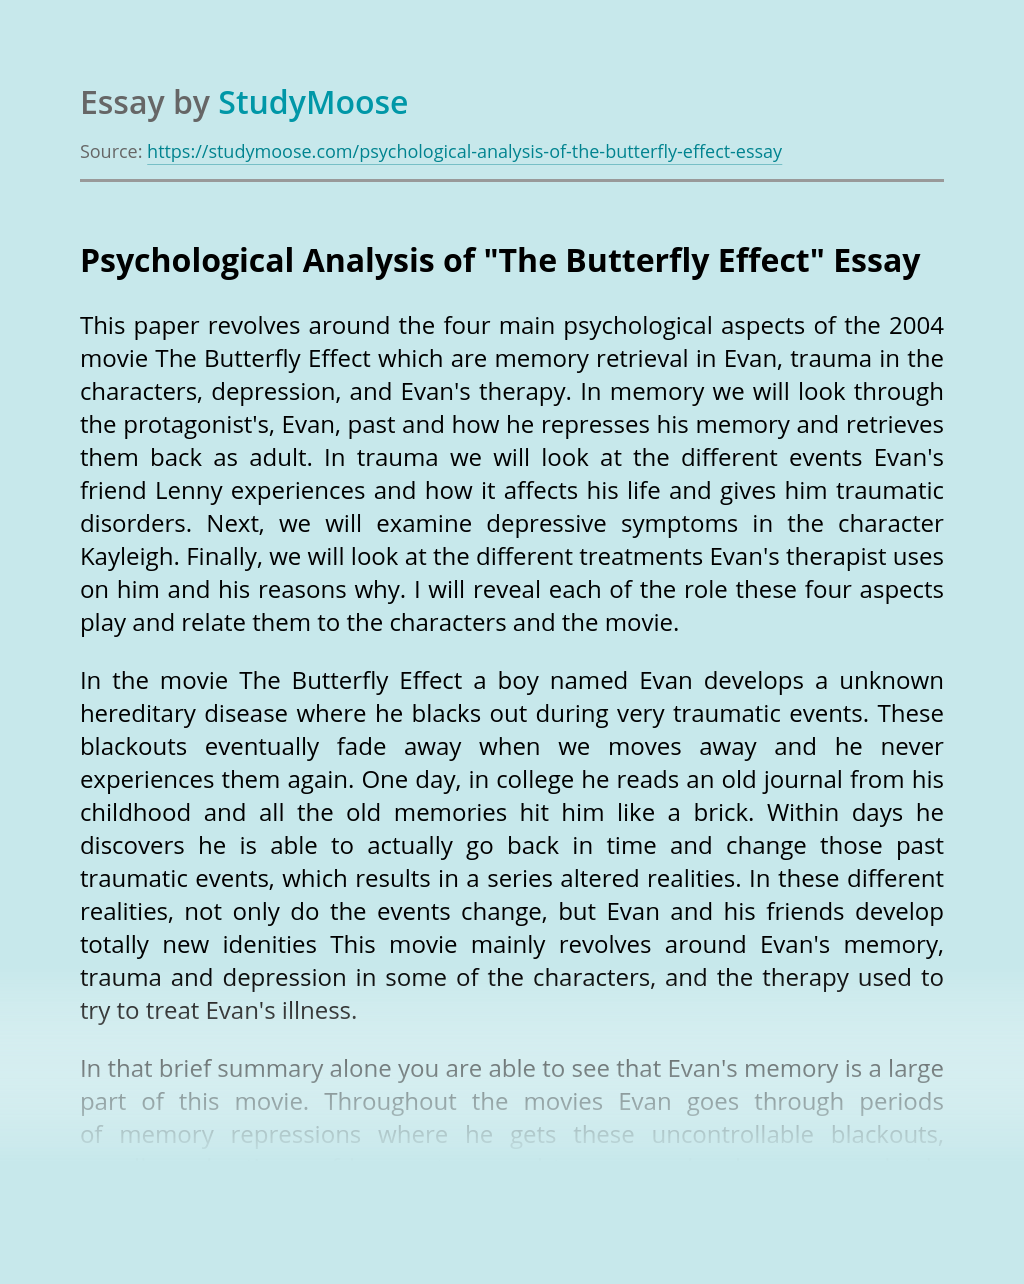 Psychological Analysis of